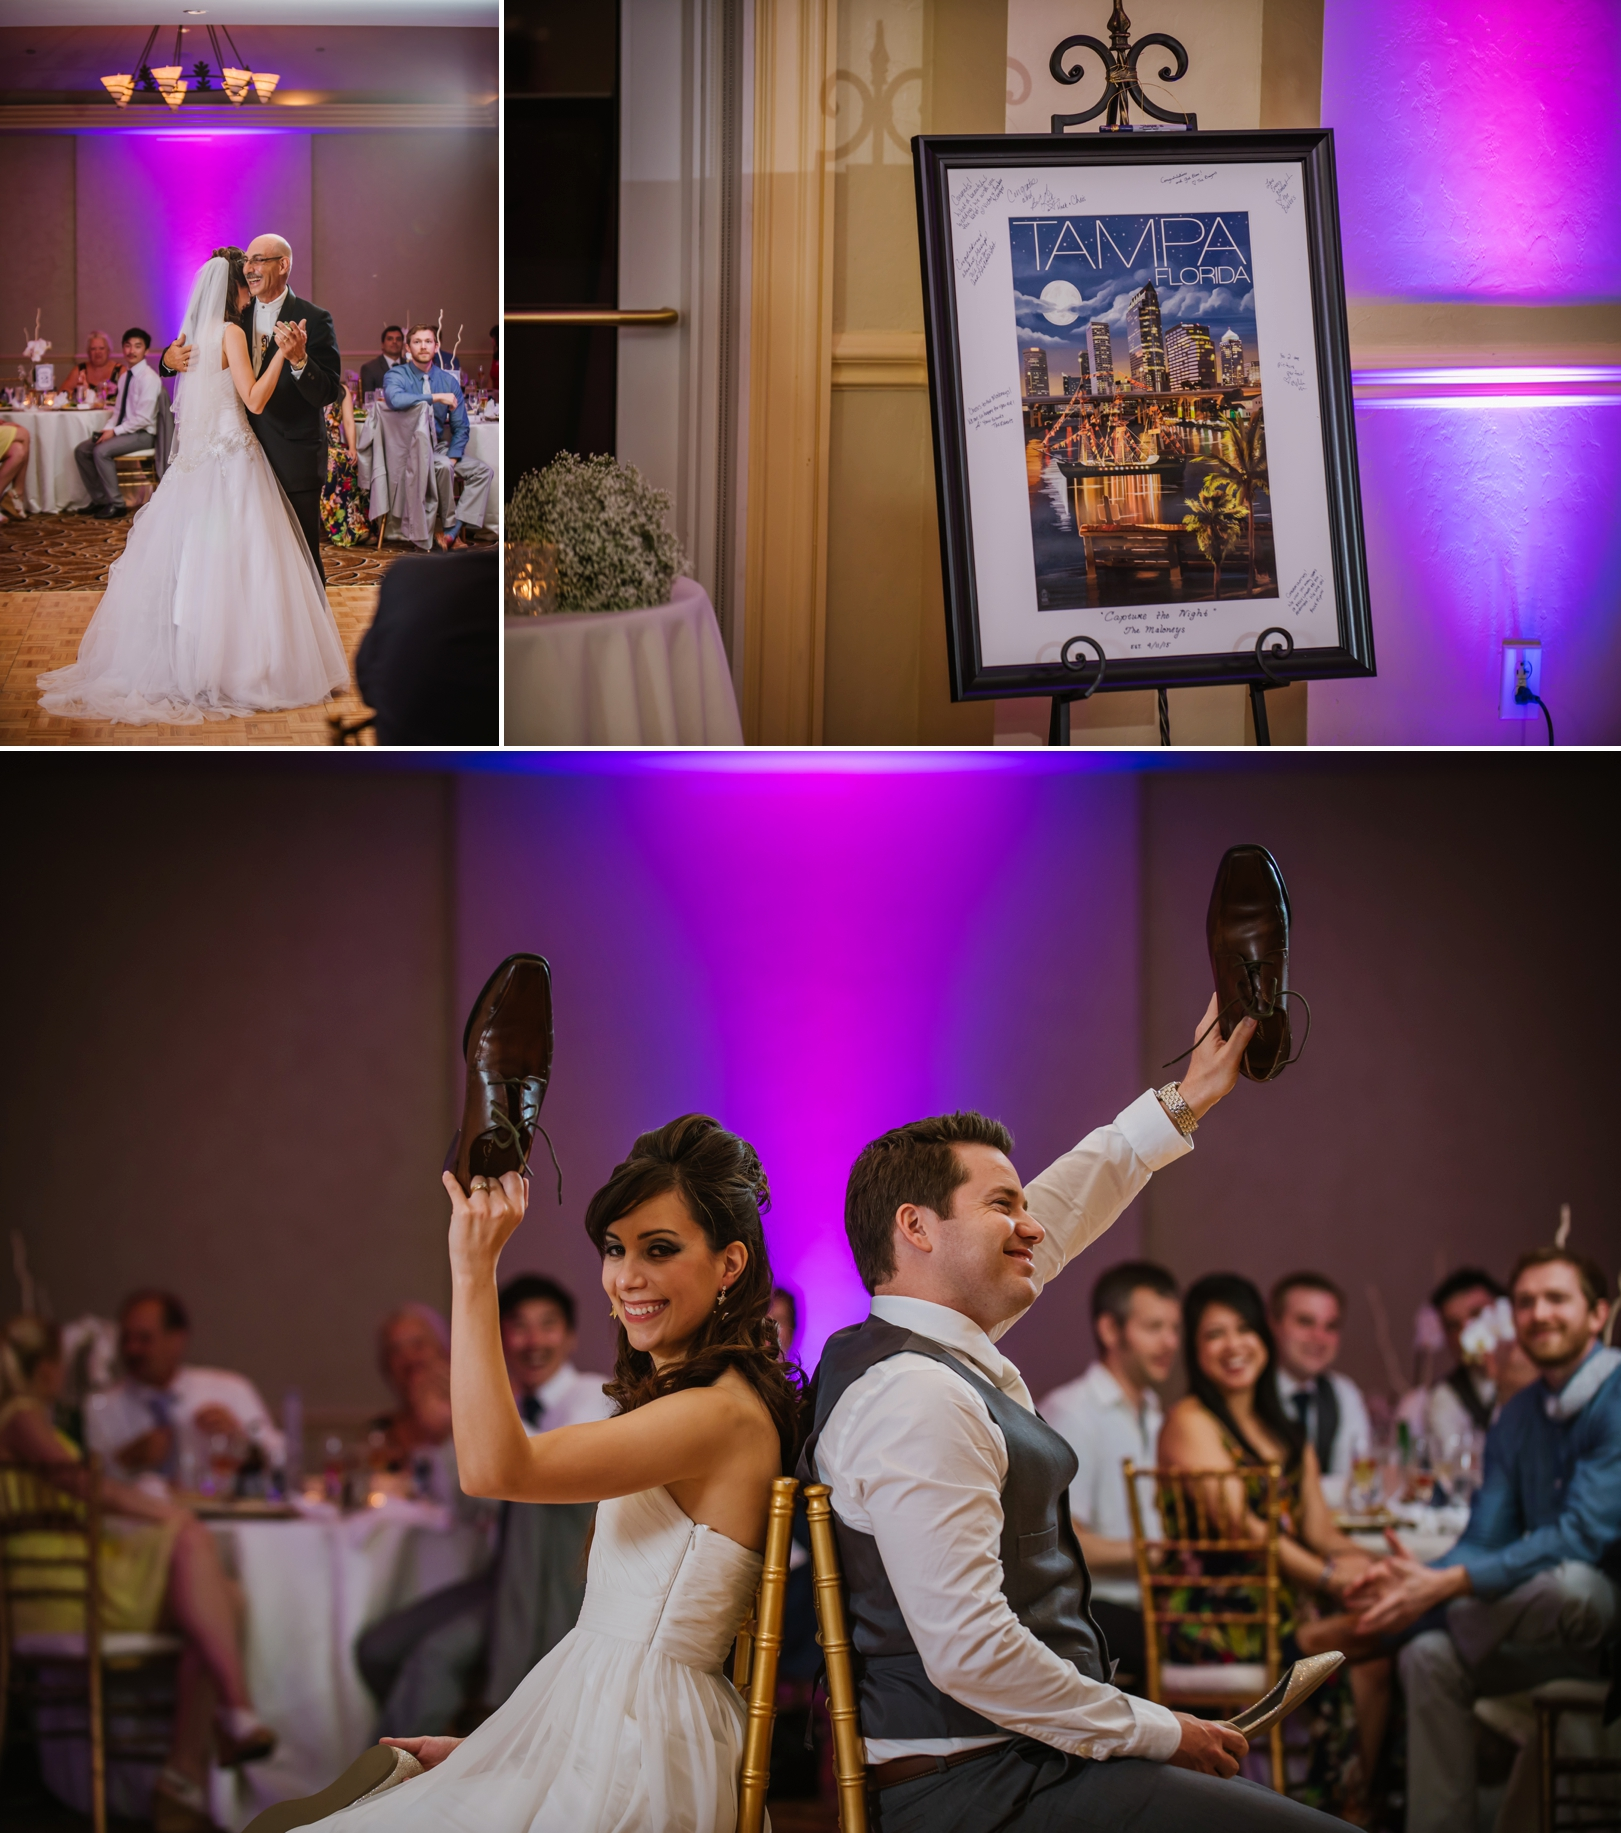 tampa-wedding-photography-traditional-cathedral-wedding_0021.jpg